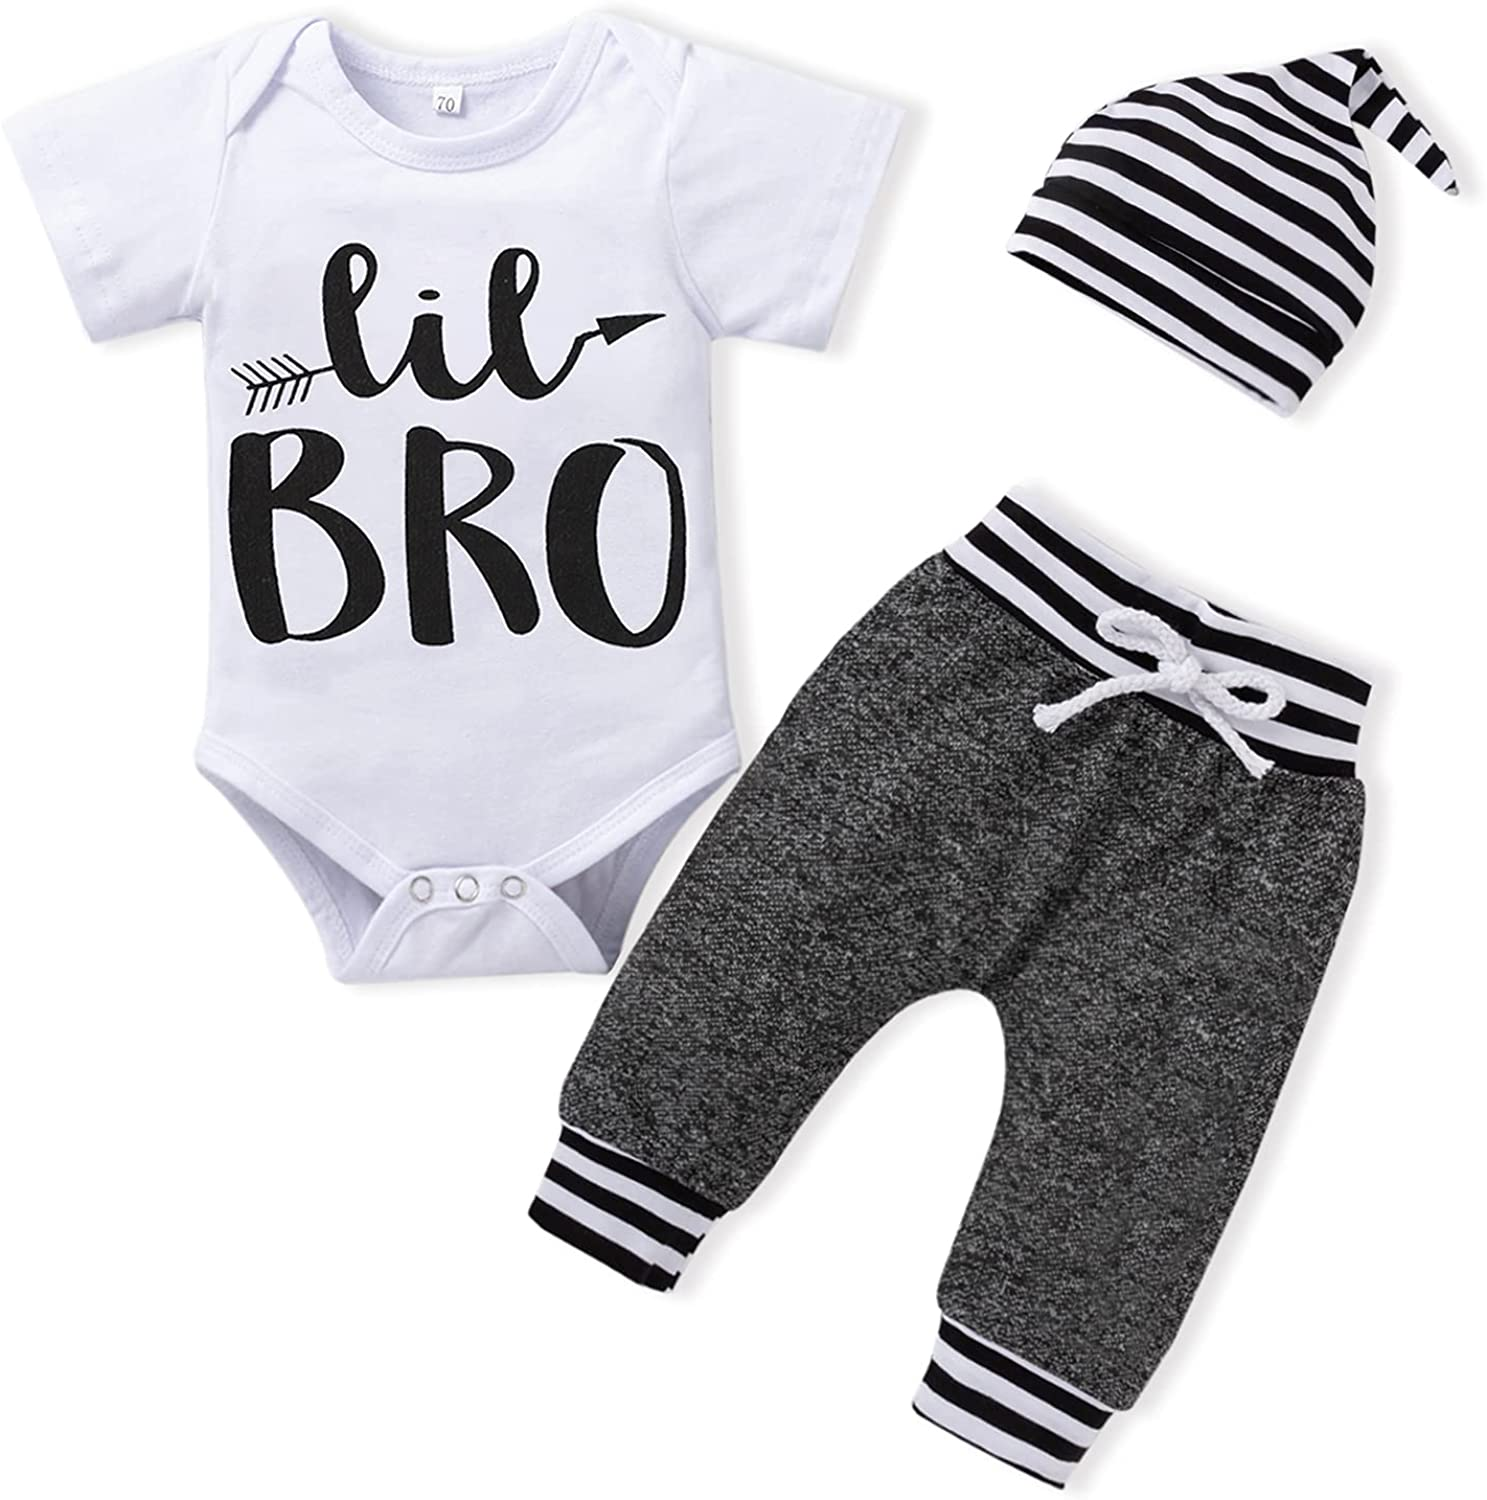 Newborn Boy Outfits Little Brother White Romper Short Sleeve Tops+Baby Boy Clothes Striped Pants+Hat 3PCS(0-12months)